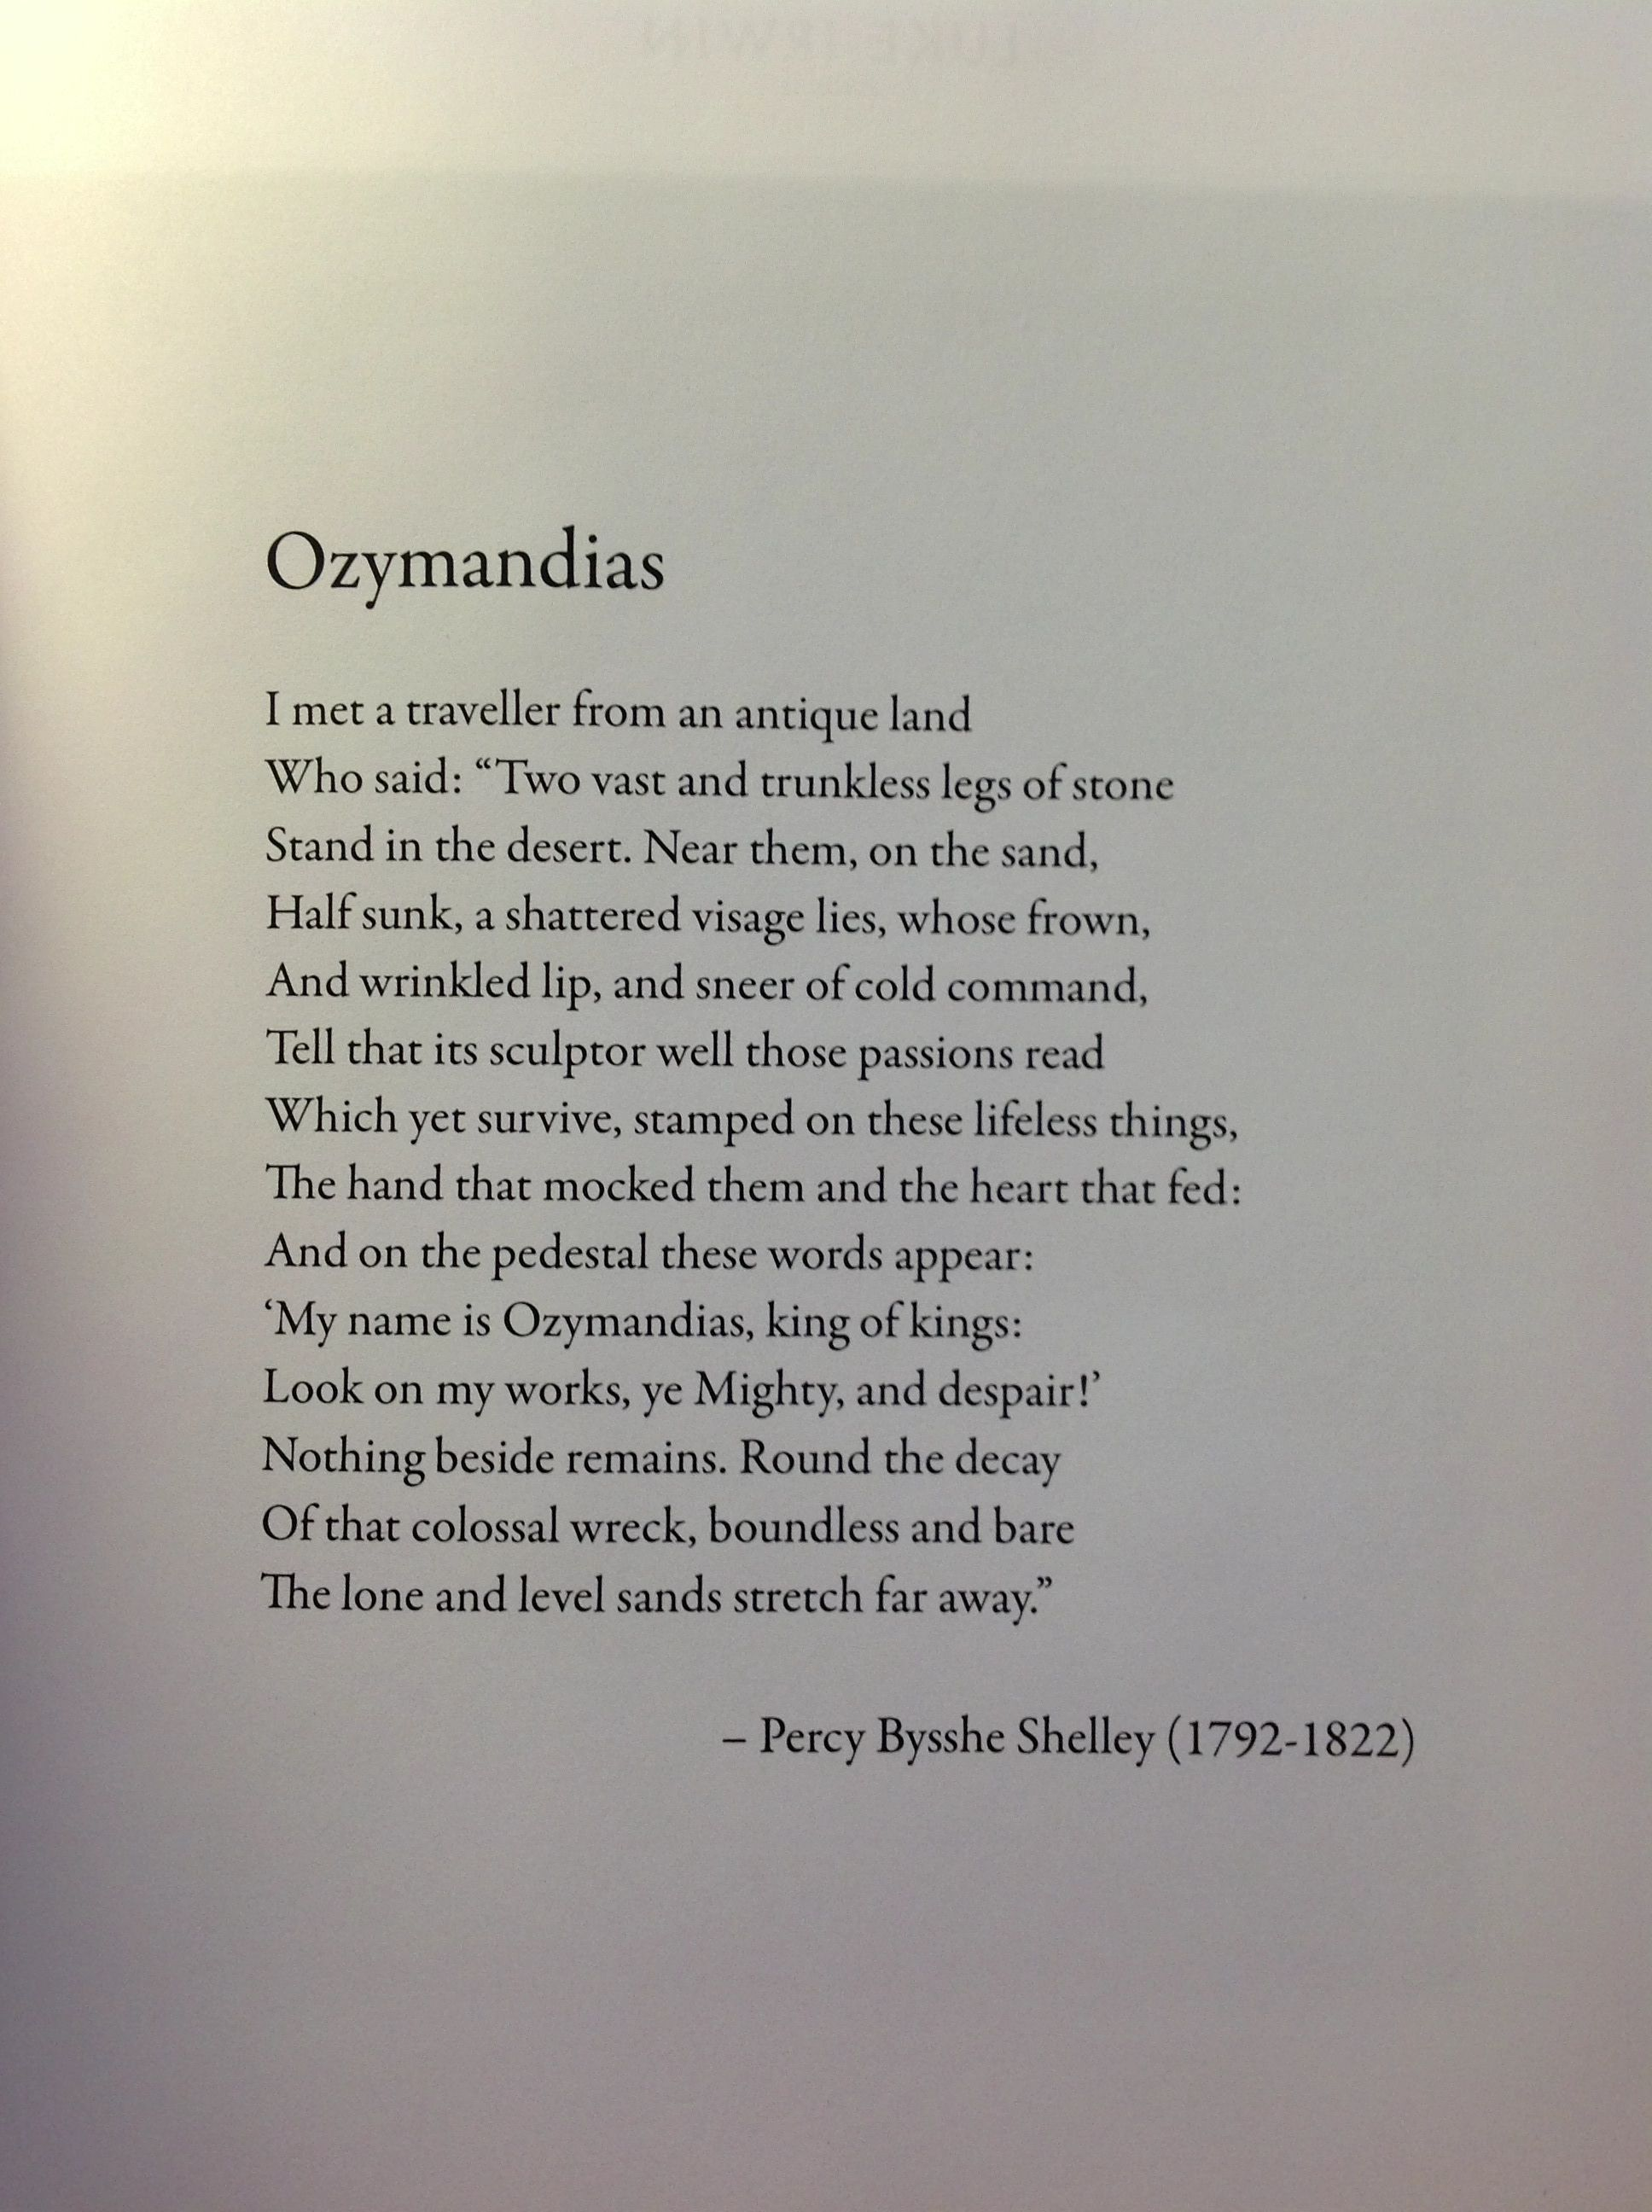 compare and contrast ozymandias poems by smith and shelly Ozymandias stanzas written in dejection near  stanzas written in dejection near naples  beautiful day to which his melancholy is in contrast.